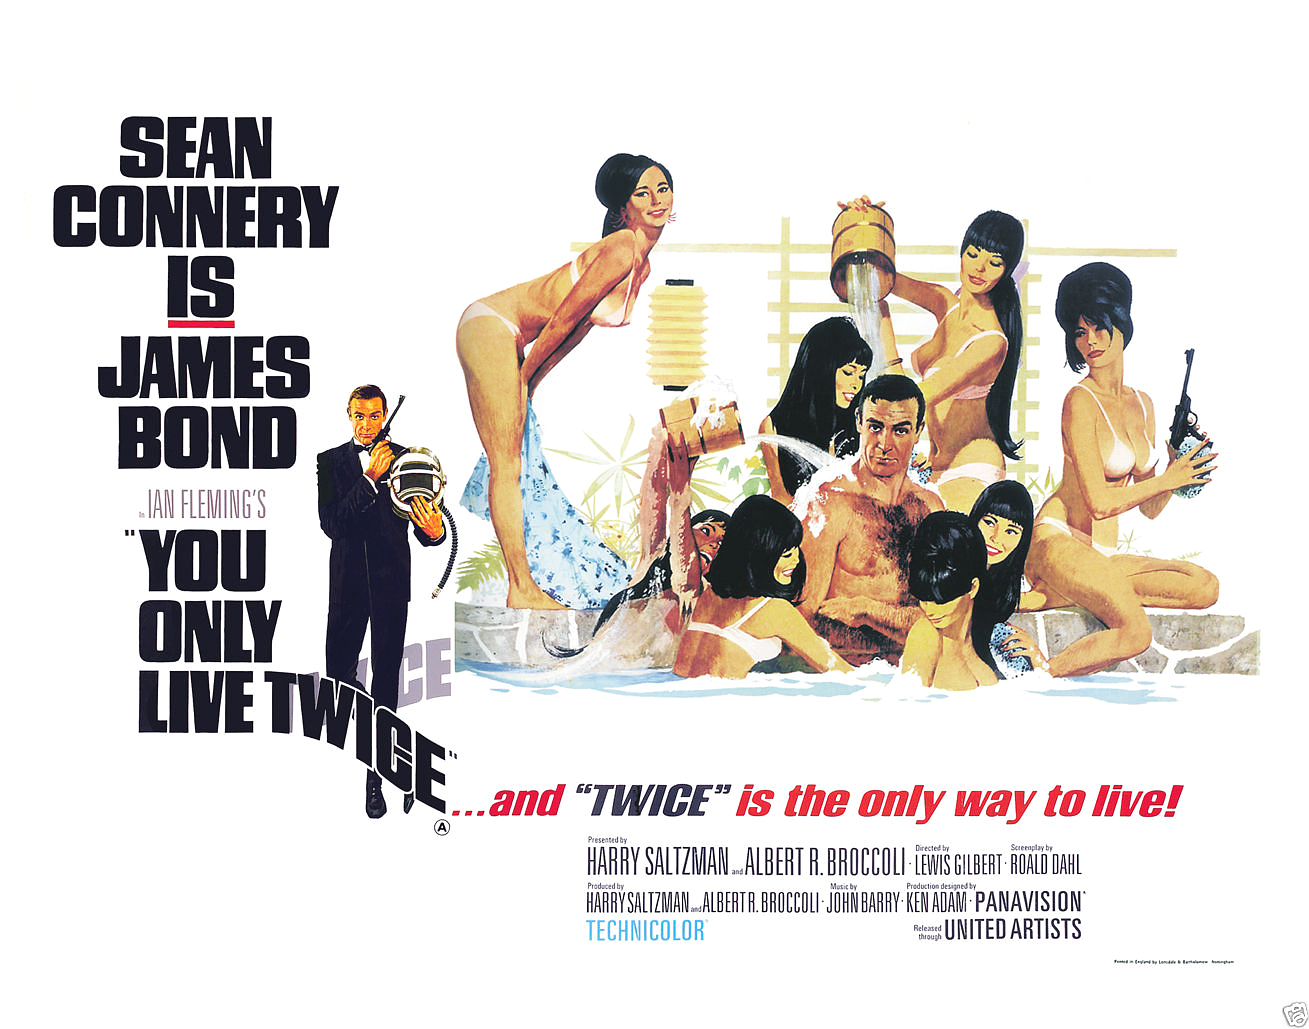 You only live twice lobby card poster 11x14